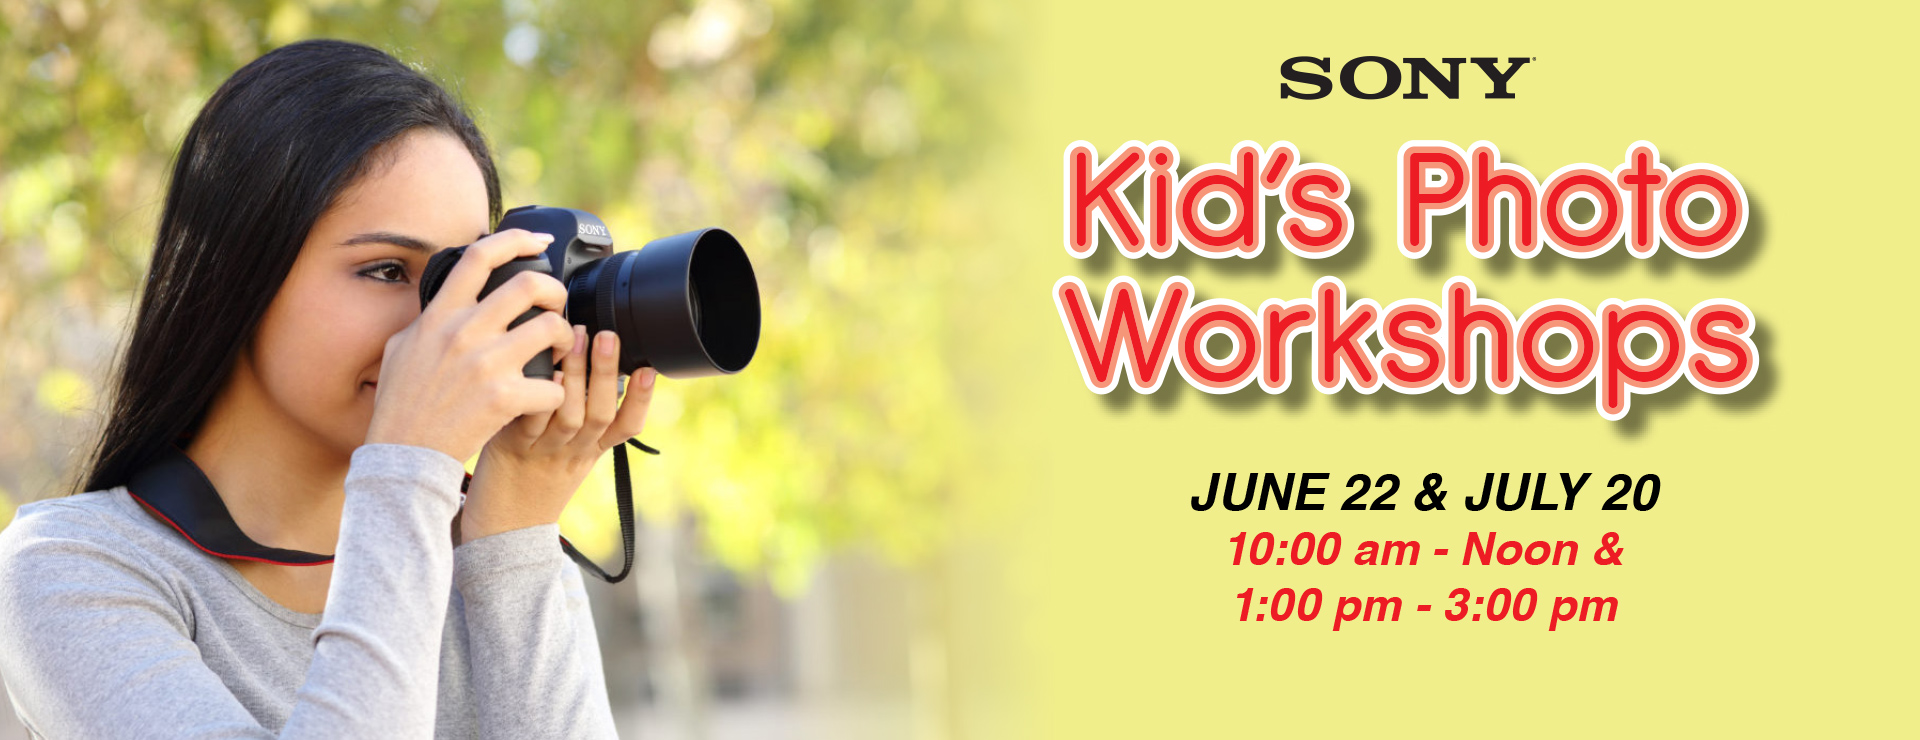 sony kid's photo workshop